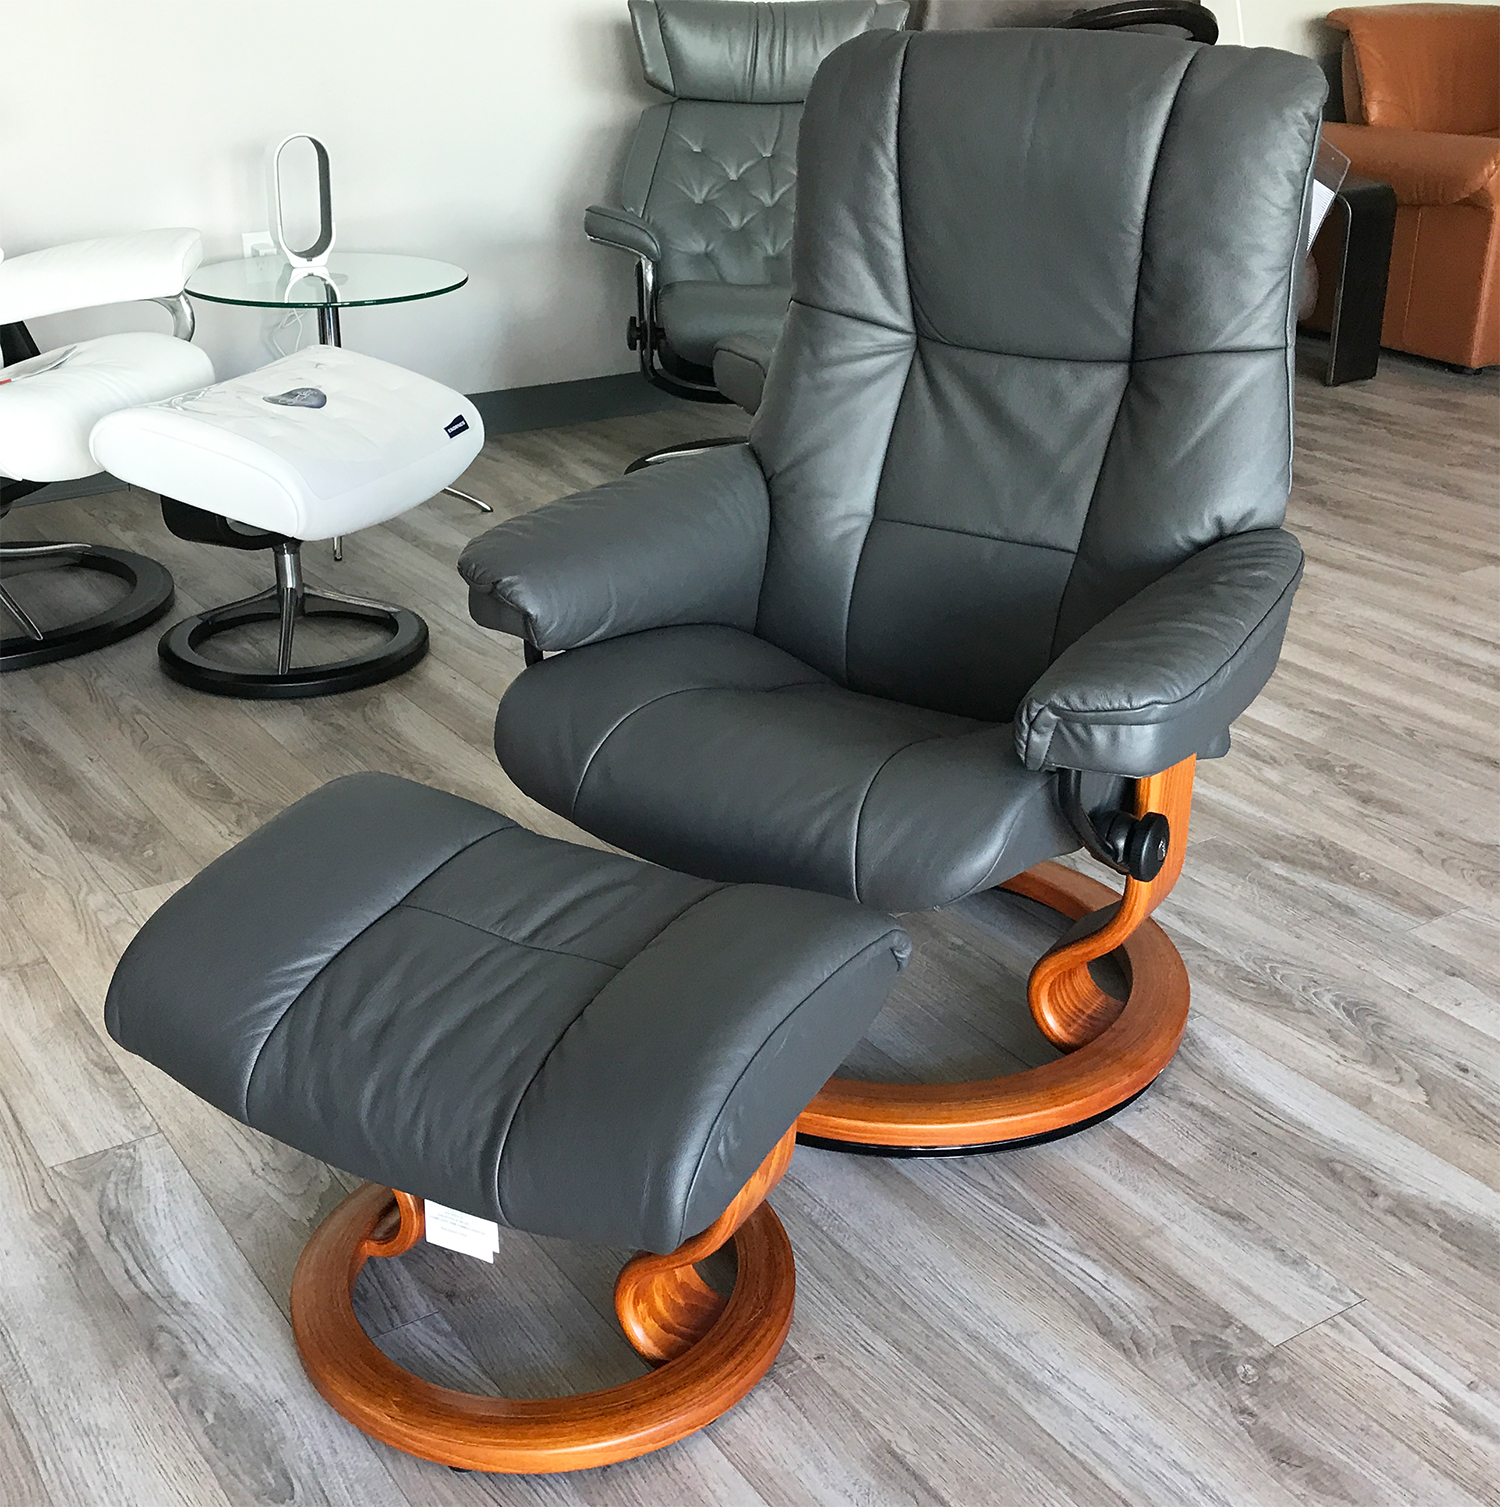 Stressless Chelsea Small Mayfair Paloma Rock Leather Recliner Chair and Ottoman by Ekornes & Chelsea Small Mayfair Paloma Rock Leather Recliner Chair and ... islam-shia.org